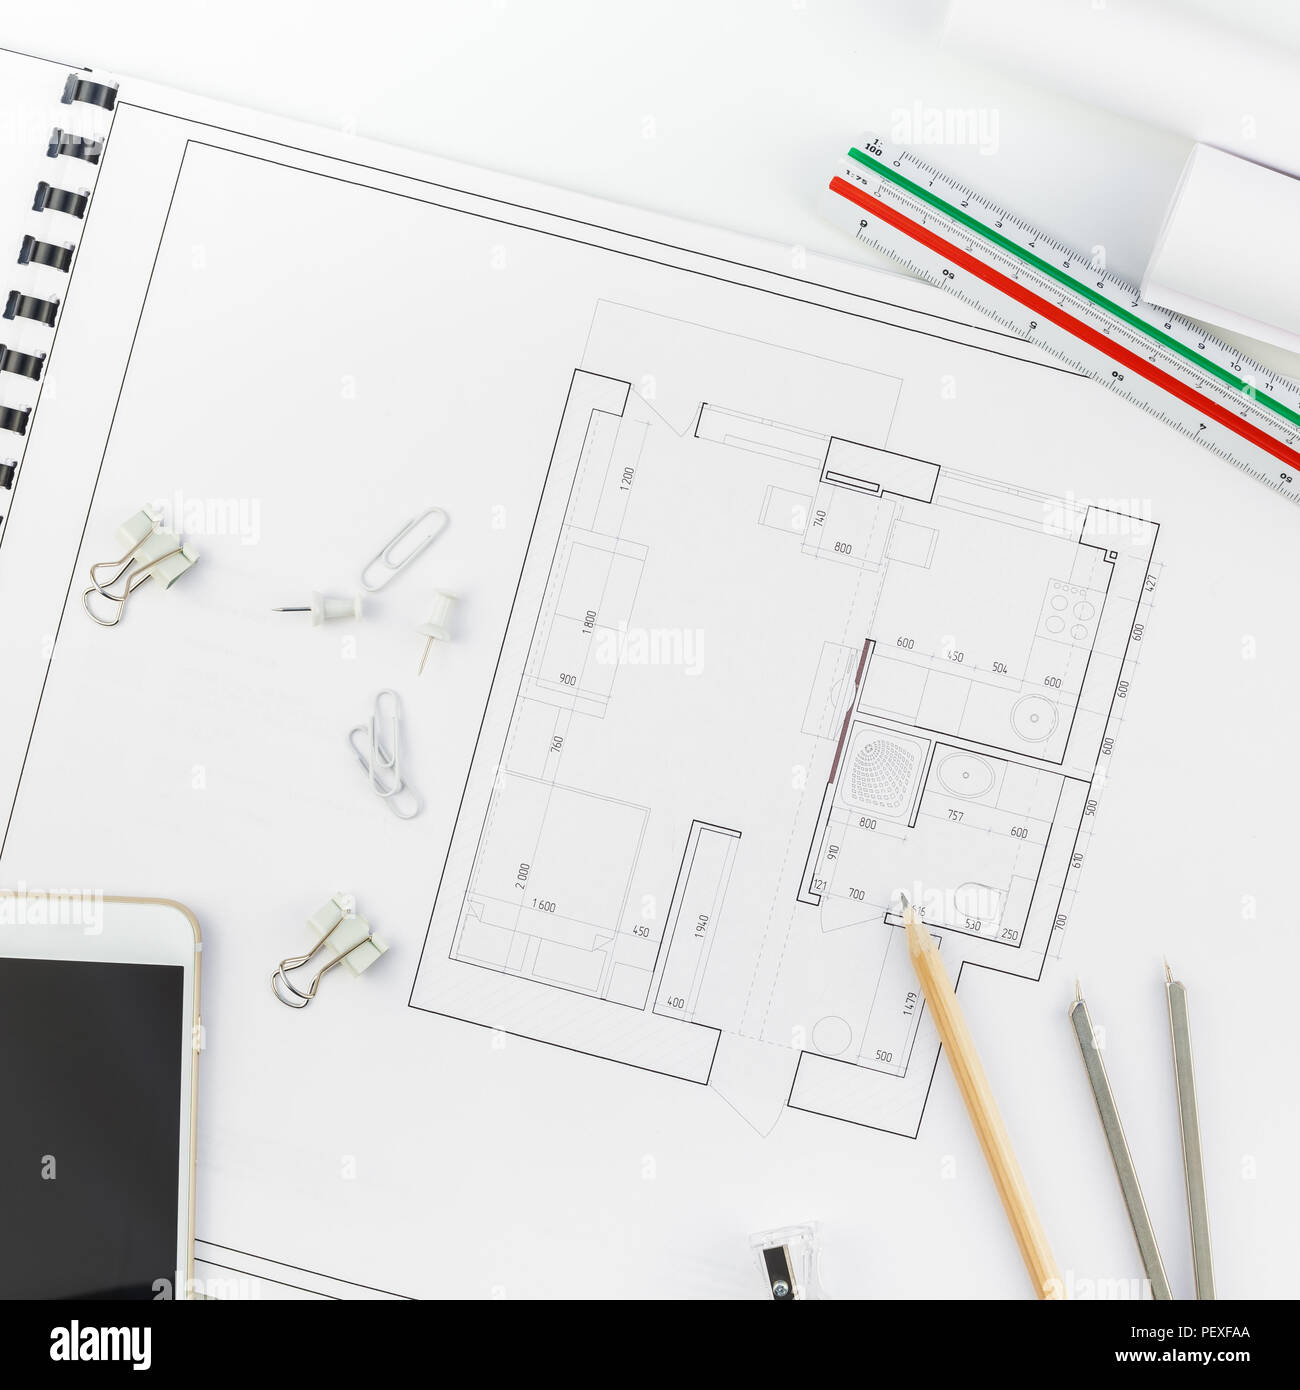 Creative Flat Lay Overhead Top View Blueprints Architectural Flat Project  Plan And Office Supplies On Decorator Square Table Workspace With Swatches T